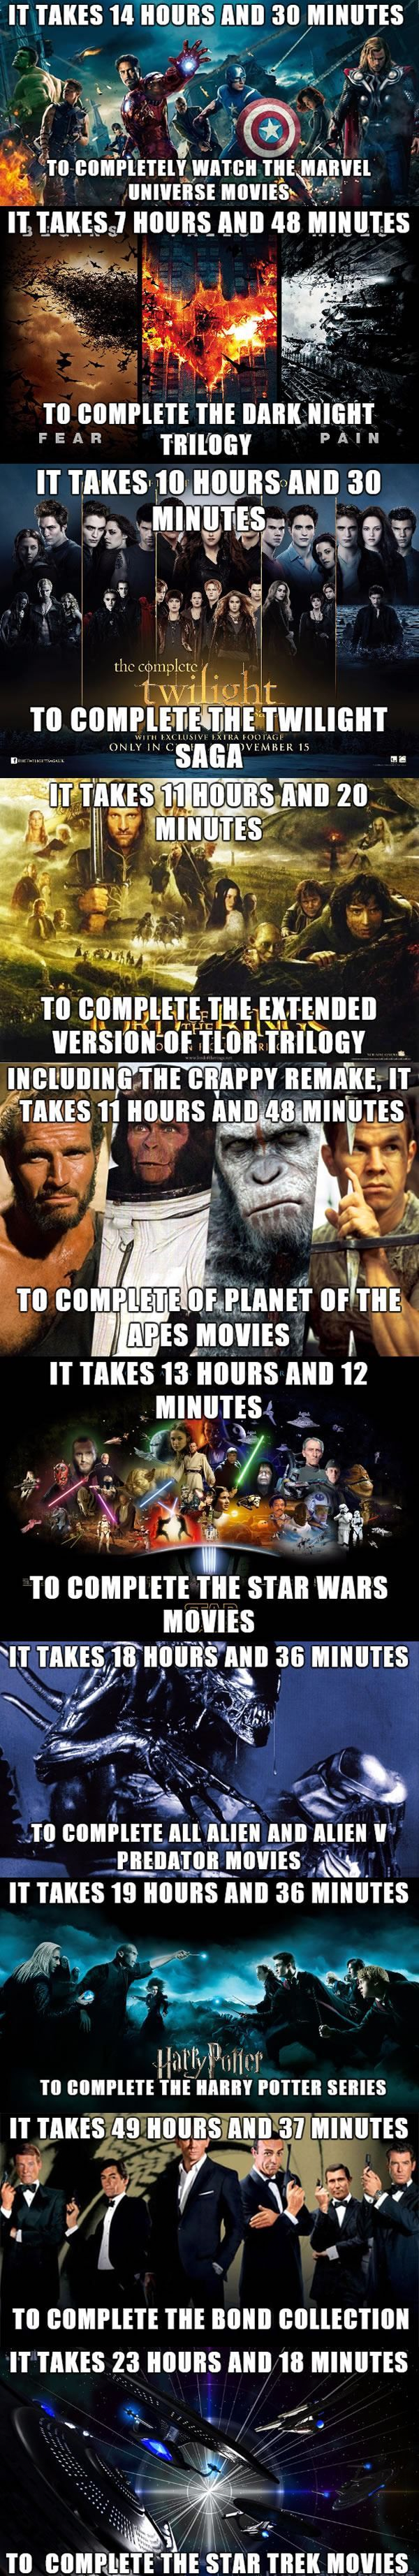 Run Times For Your Weekend Movie Marathon(s)